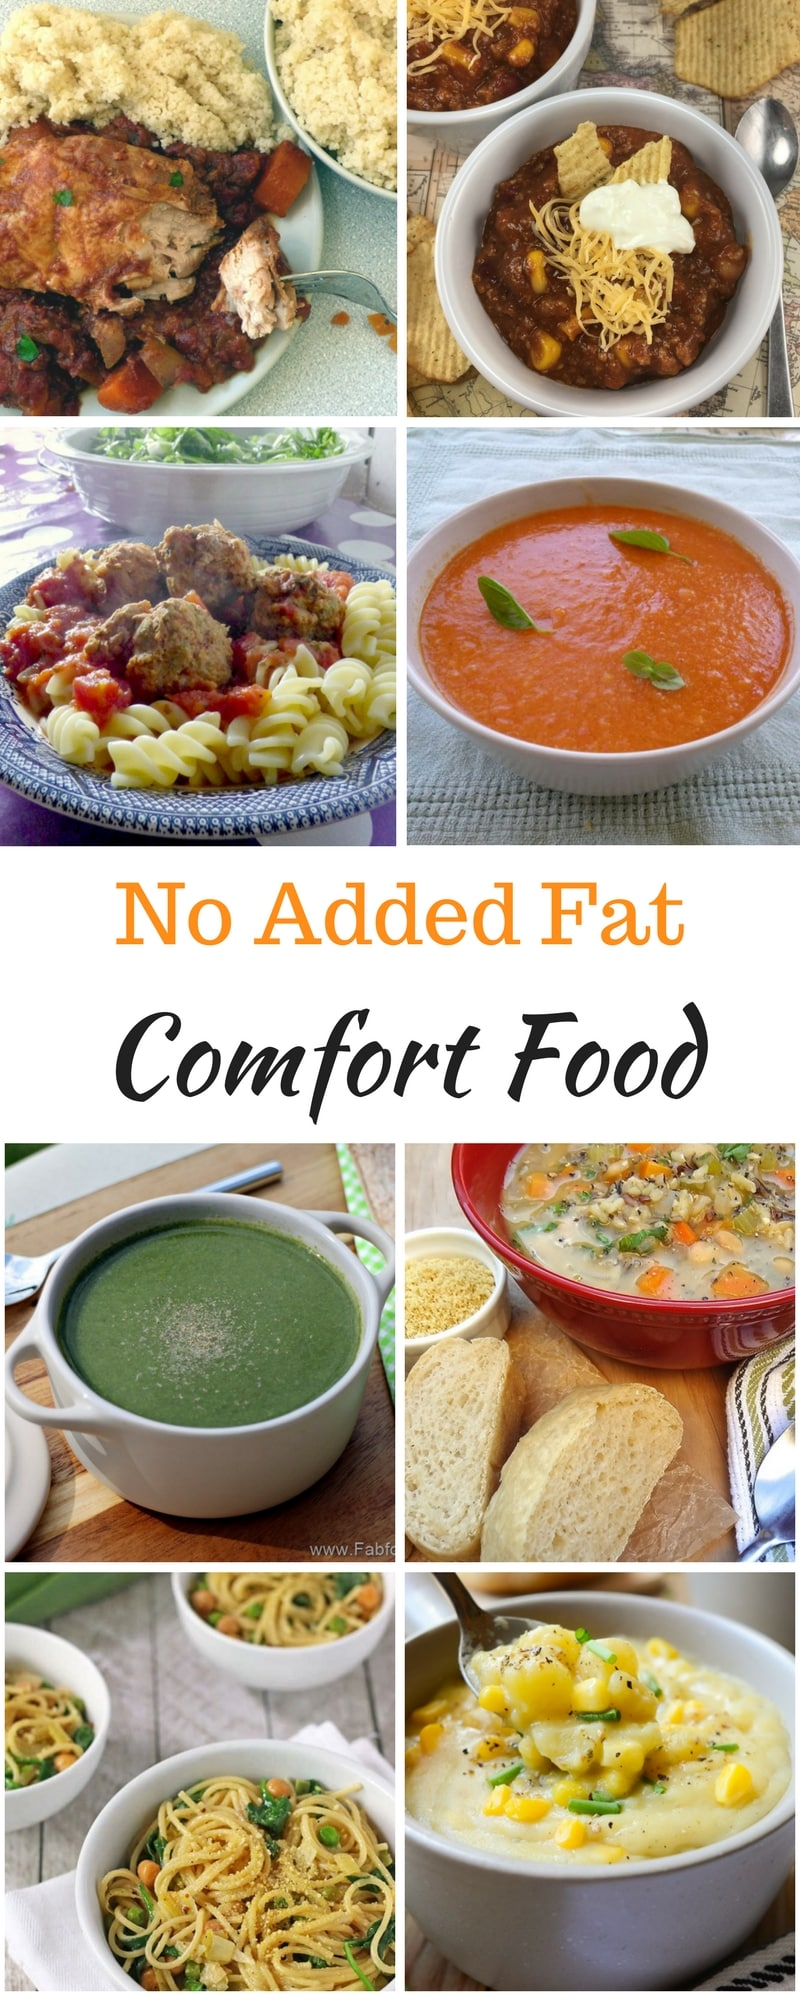 collage-of-no-added-fat-comfort-food-with-text-'no added fat comfort food'